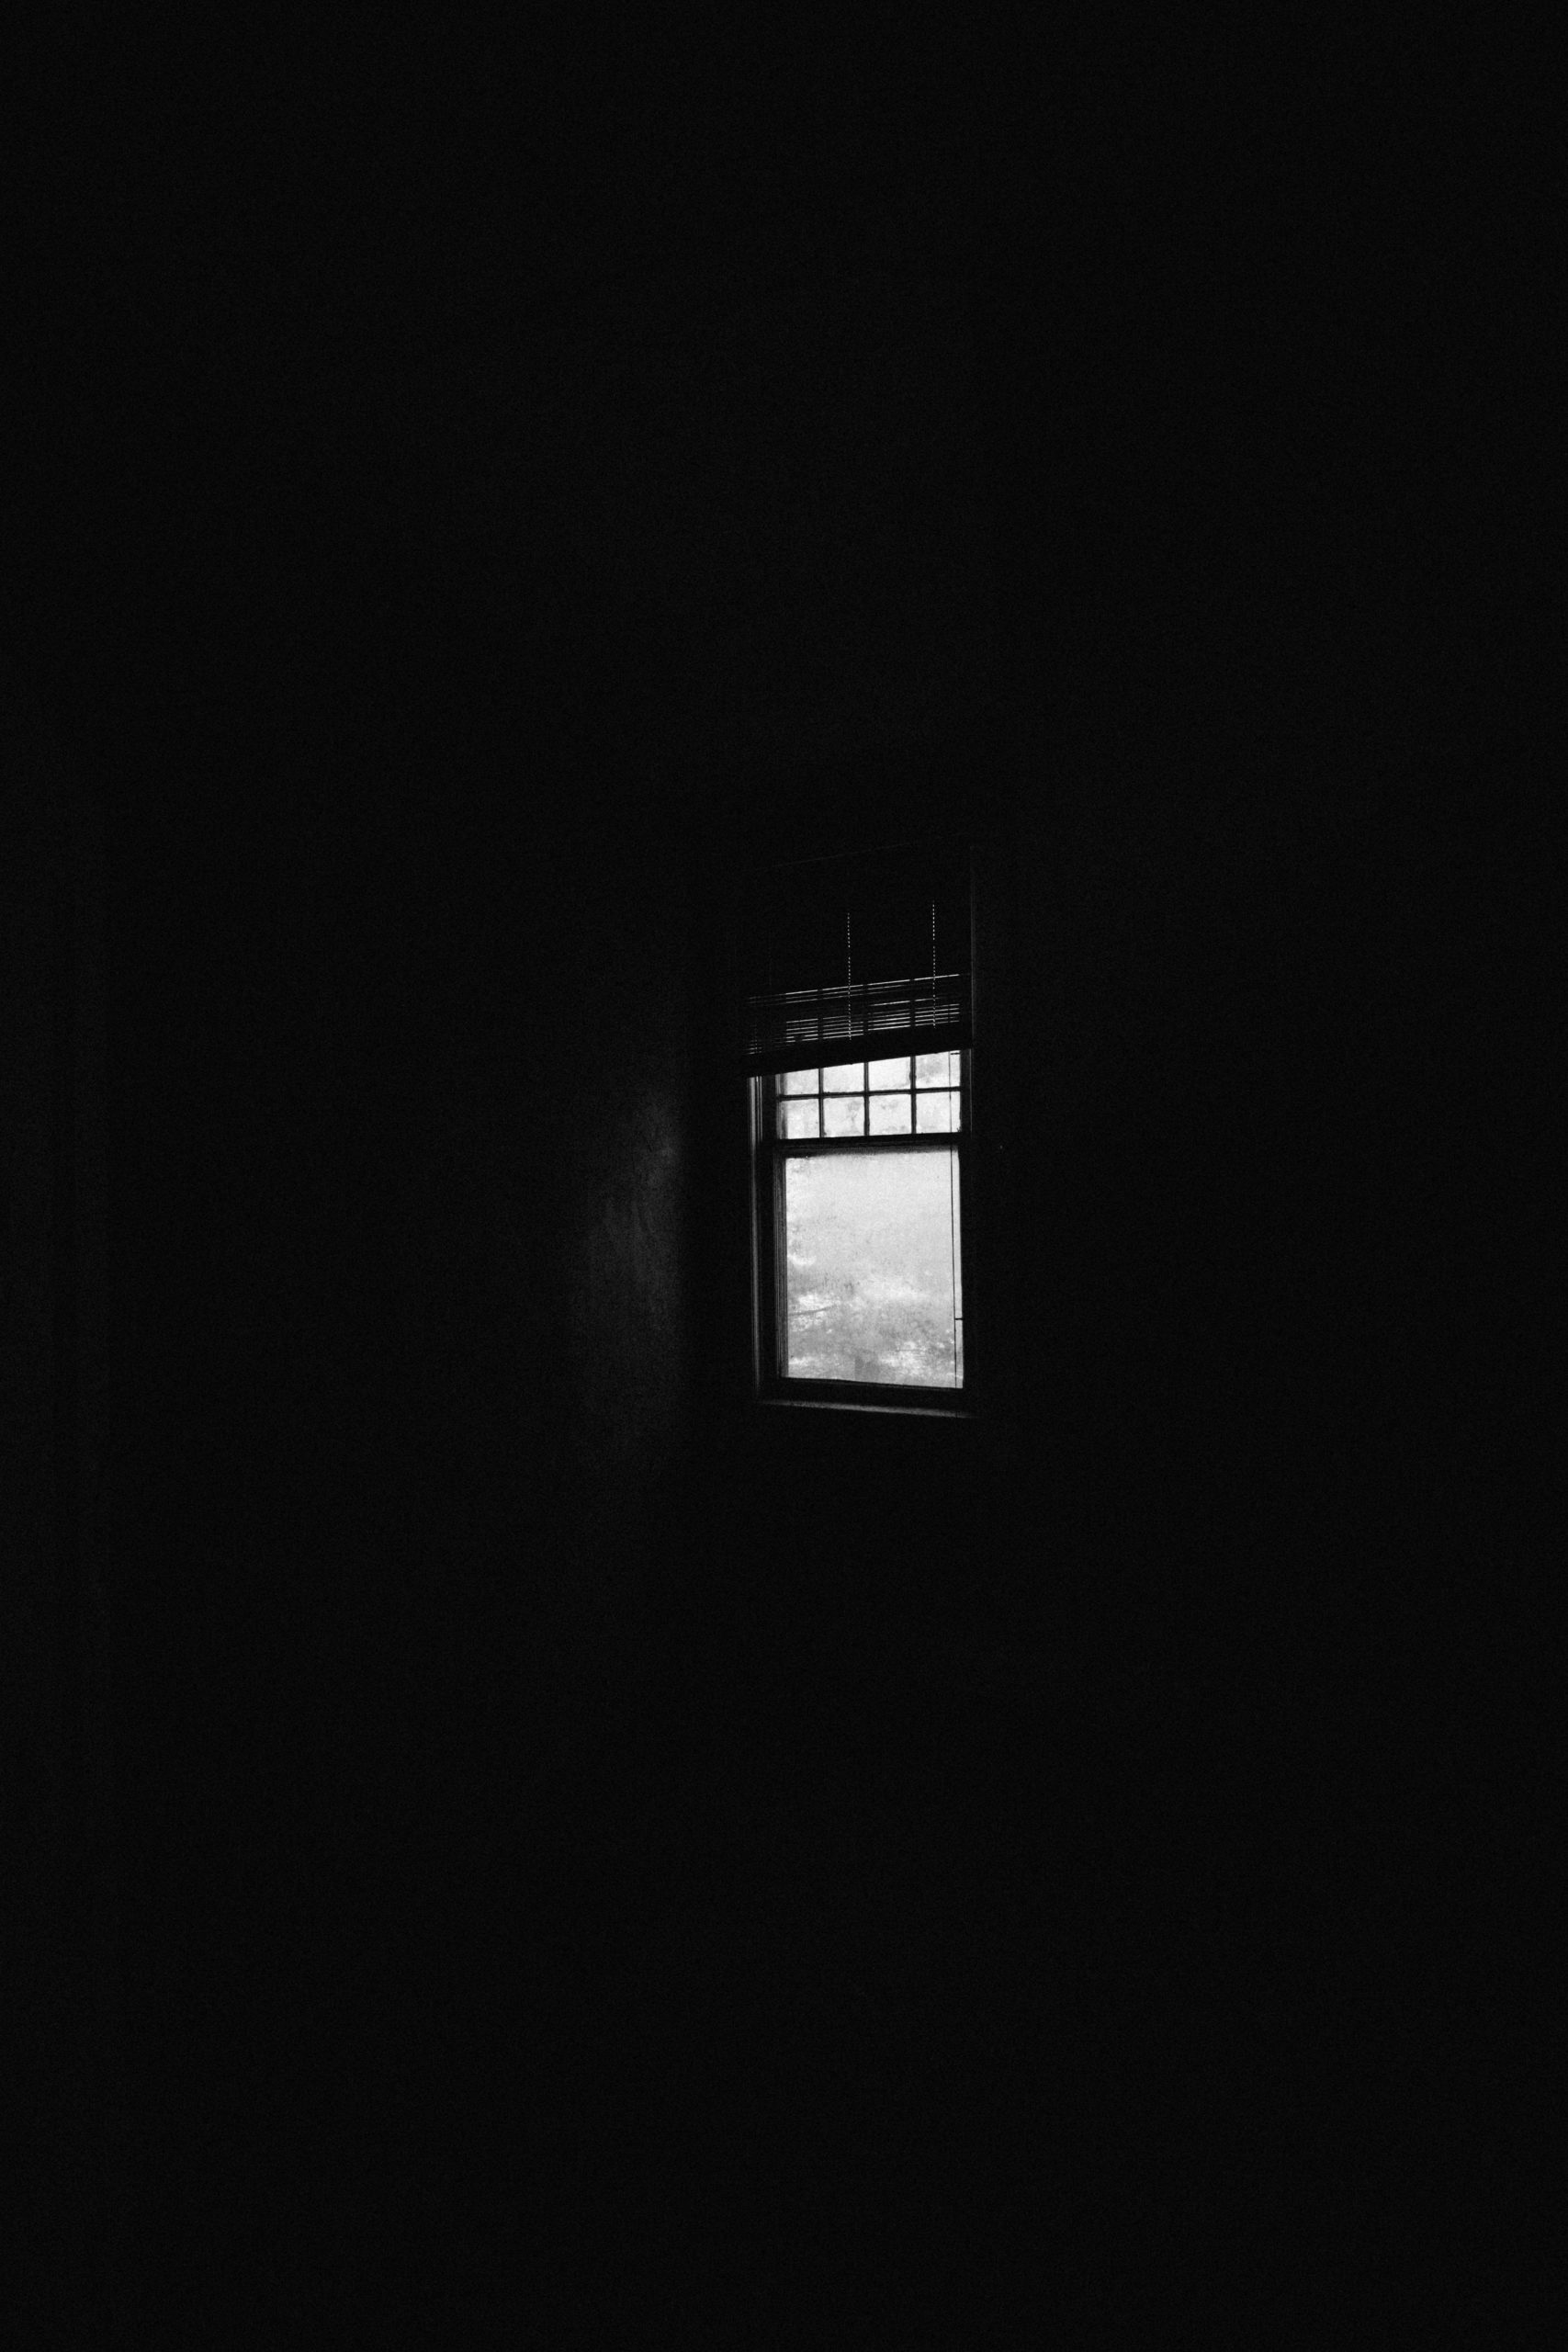 shadows in the window